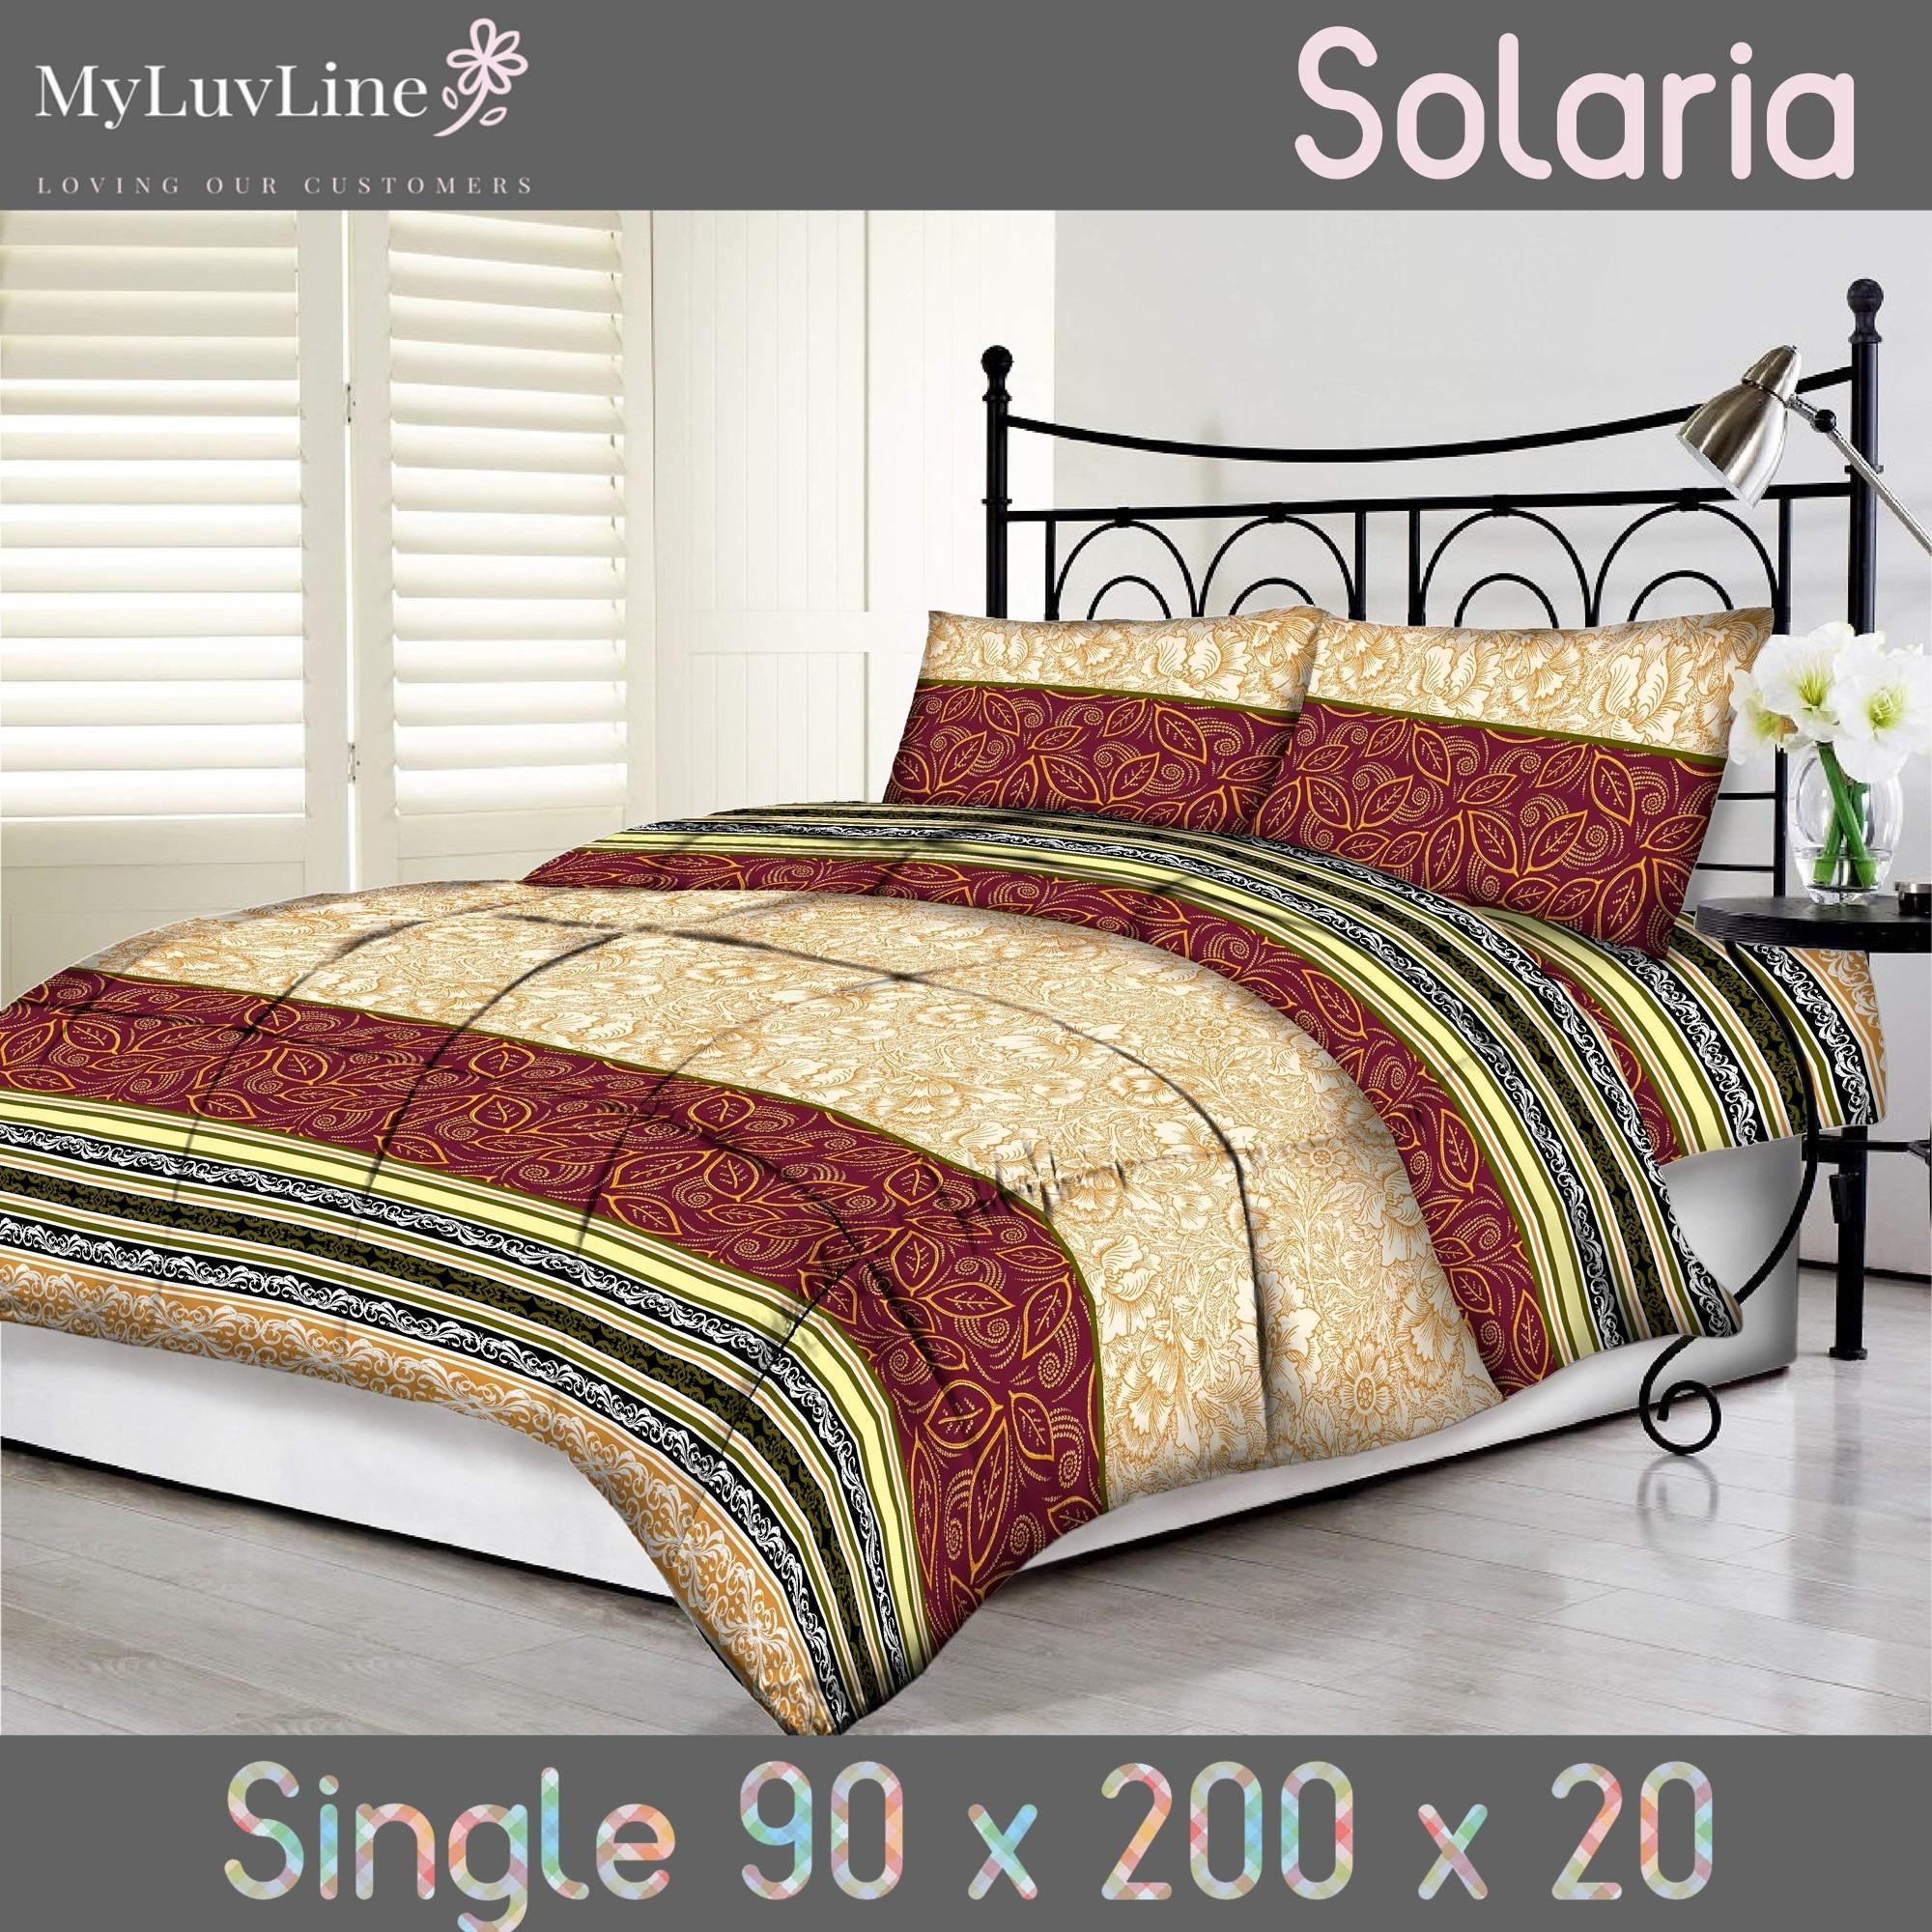 Jual Tommony Sprei Size 90 S D 180 Solaria Termurah